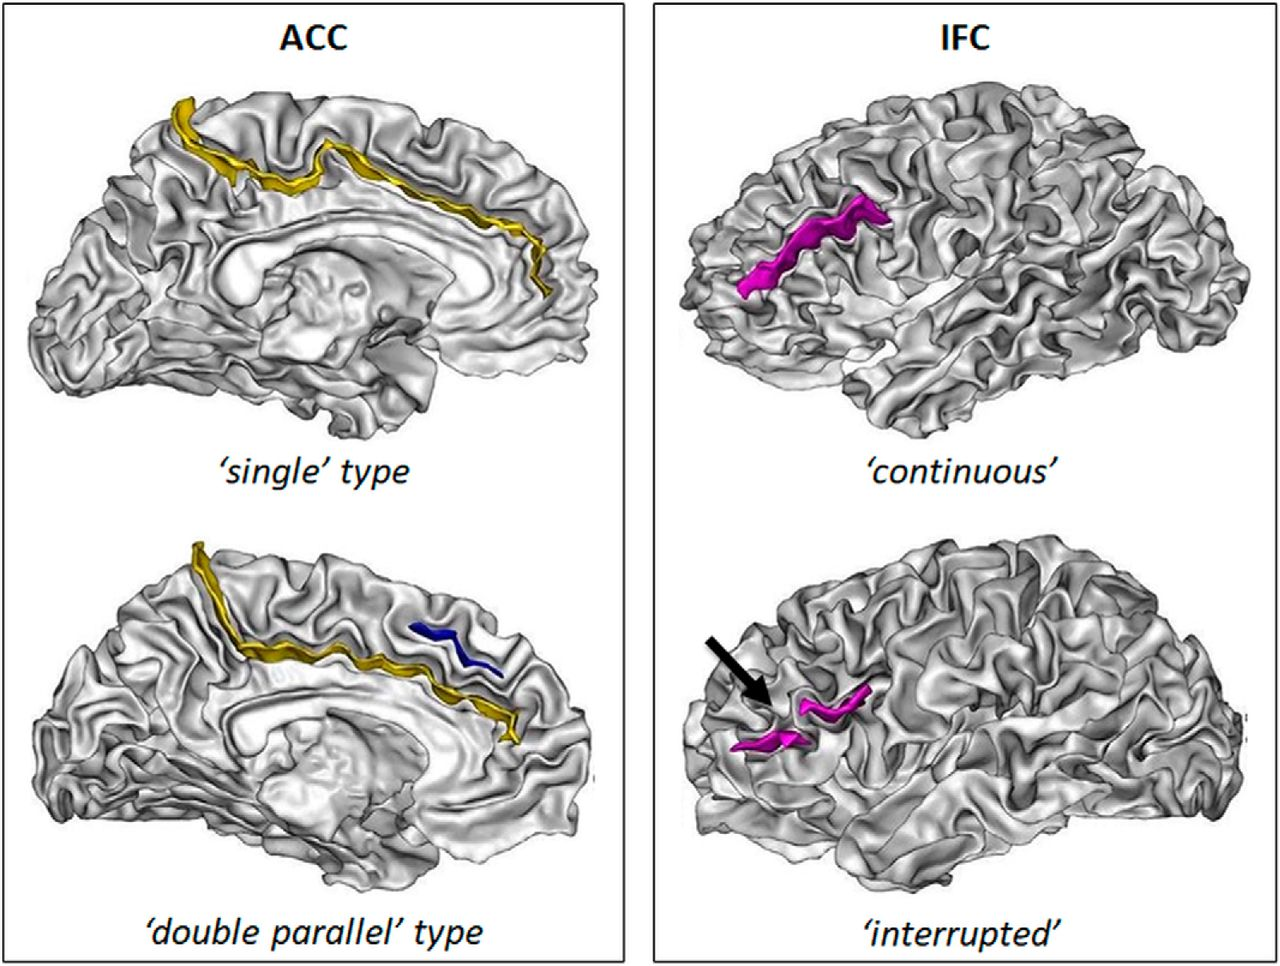 Sulcal Polymorphisms Of The Ifc And Acc Contribute To Inhibitory